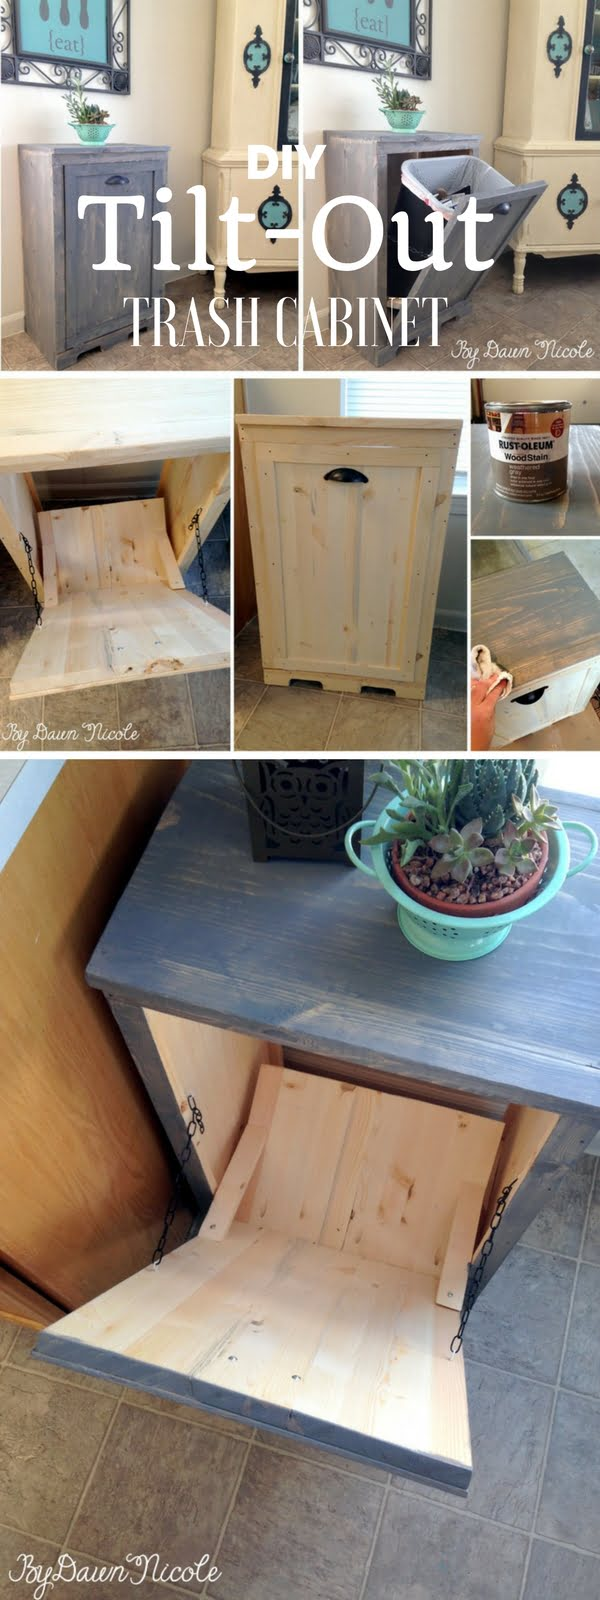 Check out the tutorial: #DIY Tilt Out Trash Cabinet